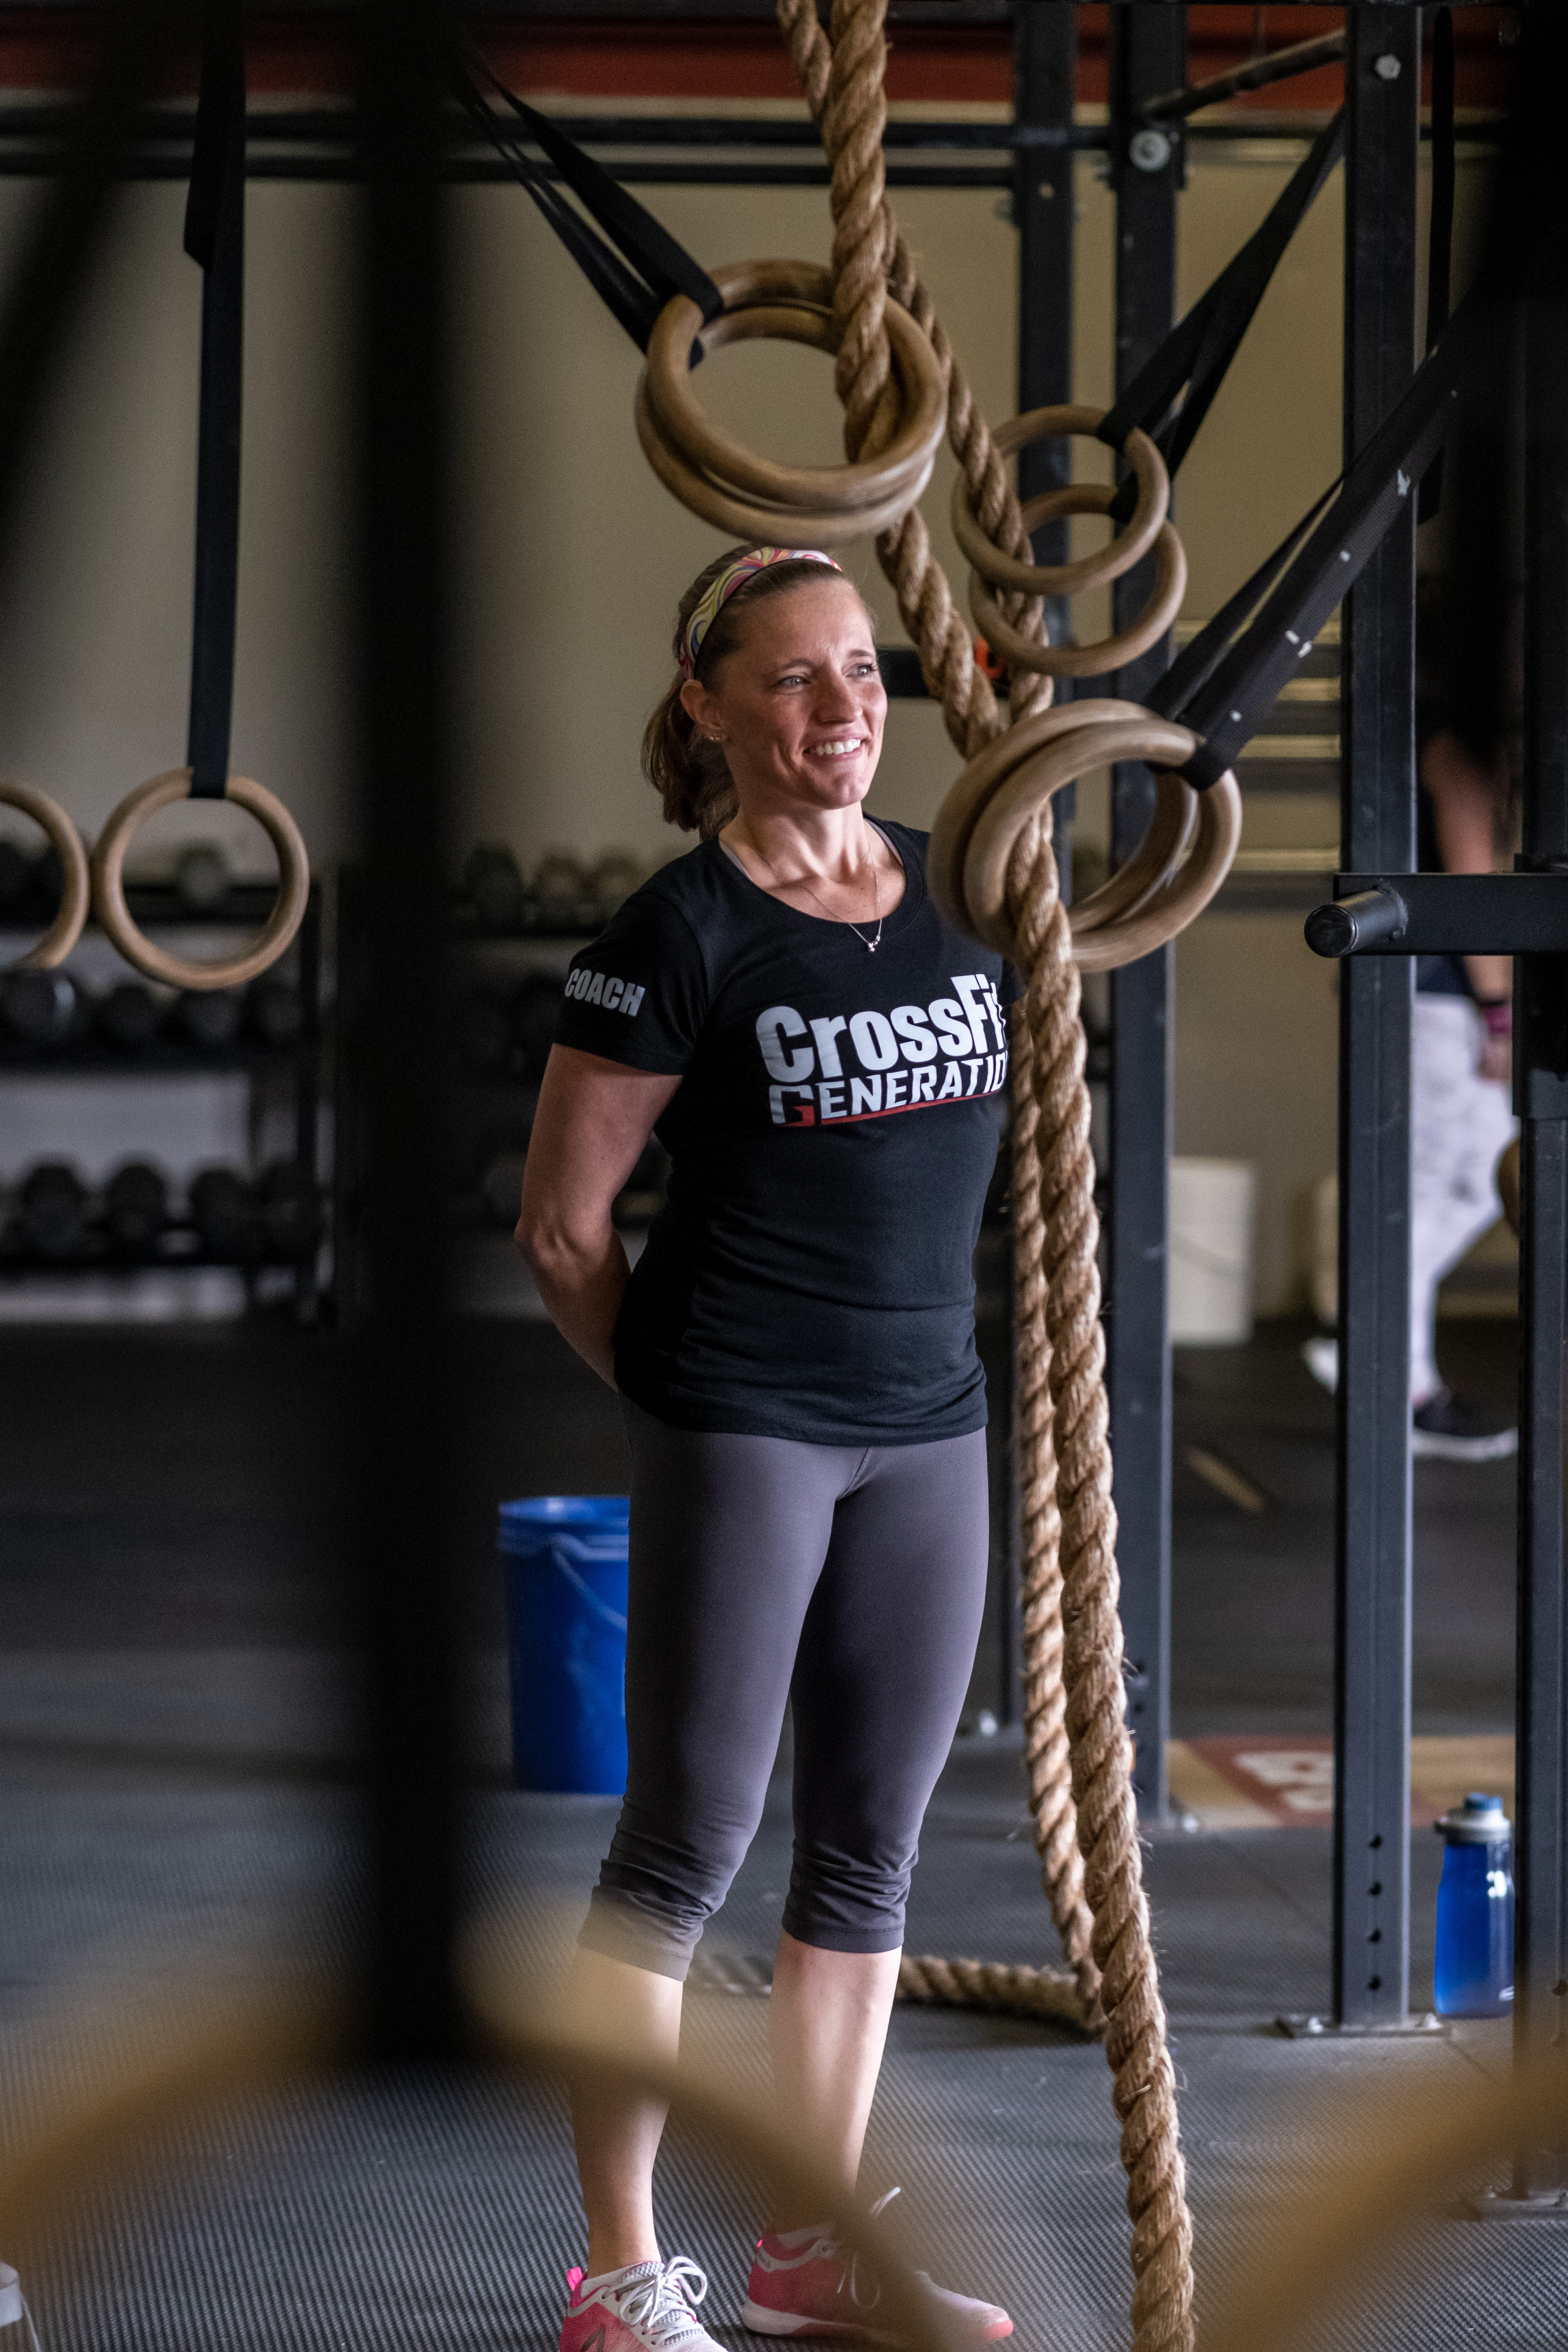 CrossFit Generation In the News…